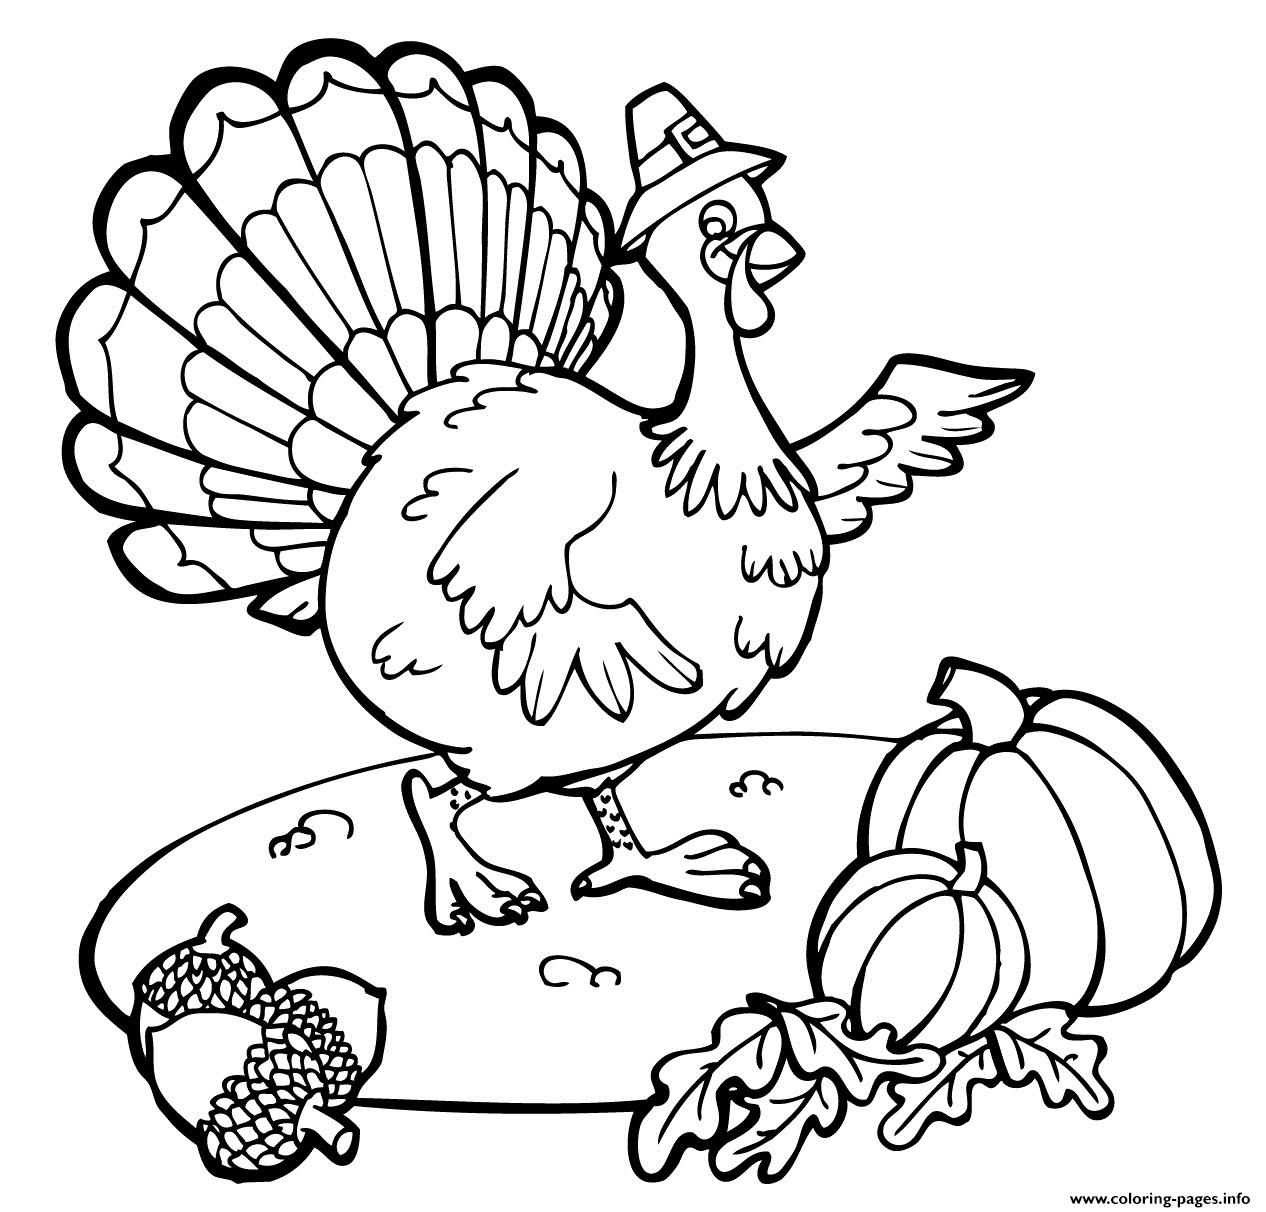 kids thanksgiving day 10 october 2017 coloring pages - October Coloring